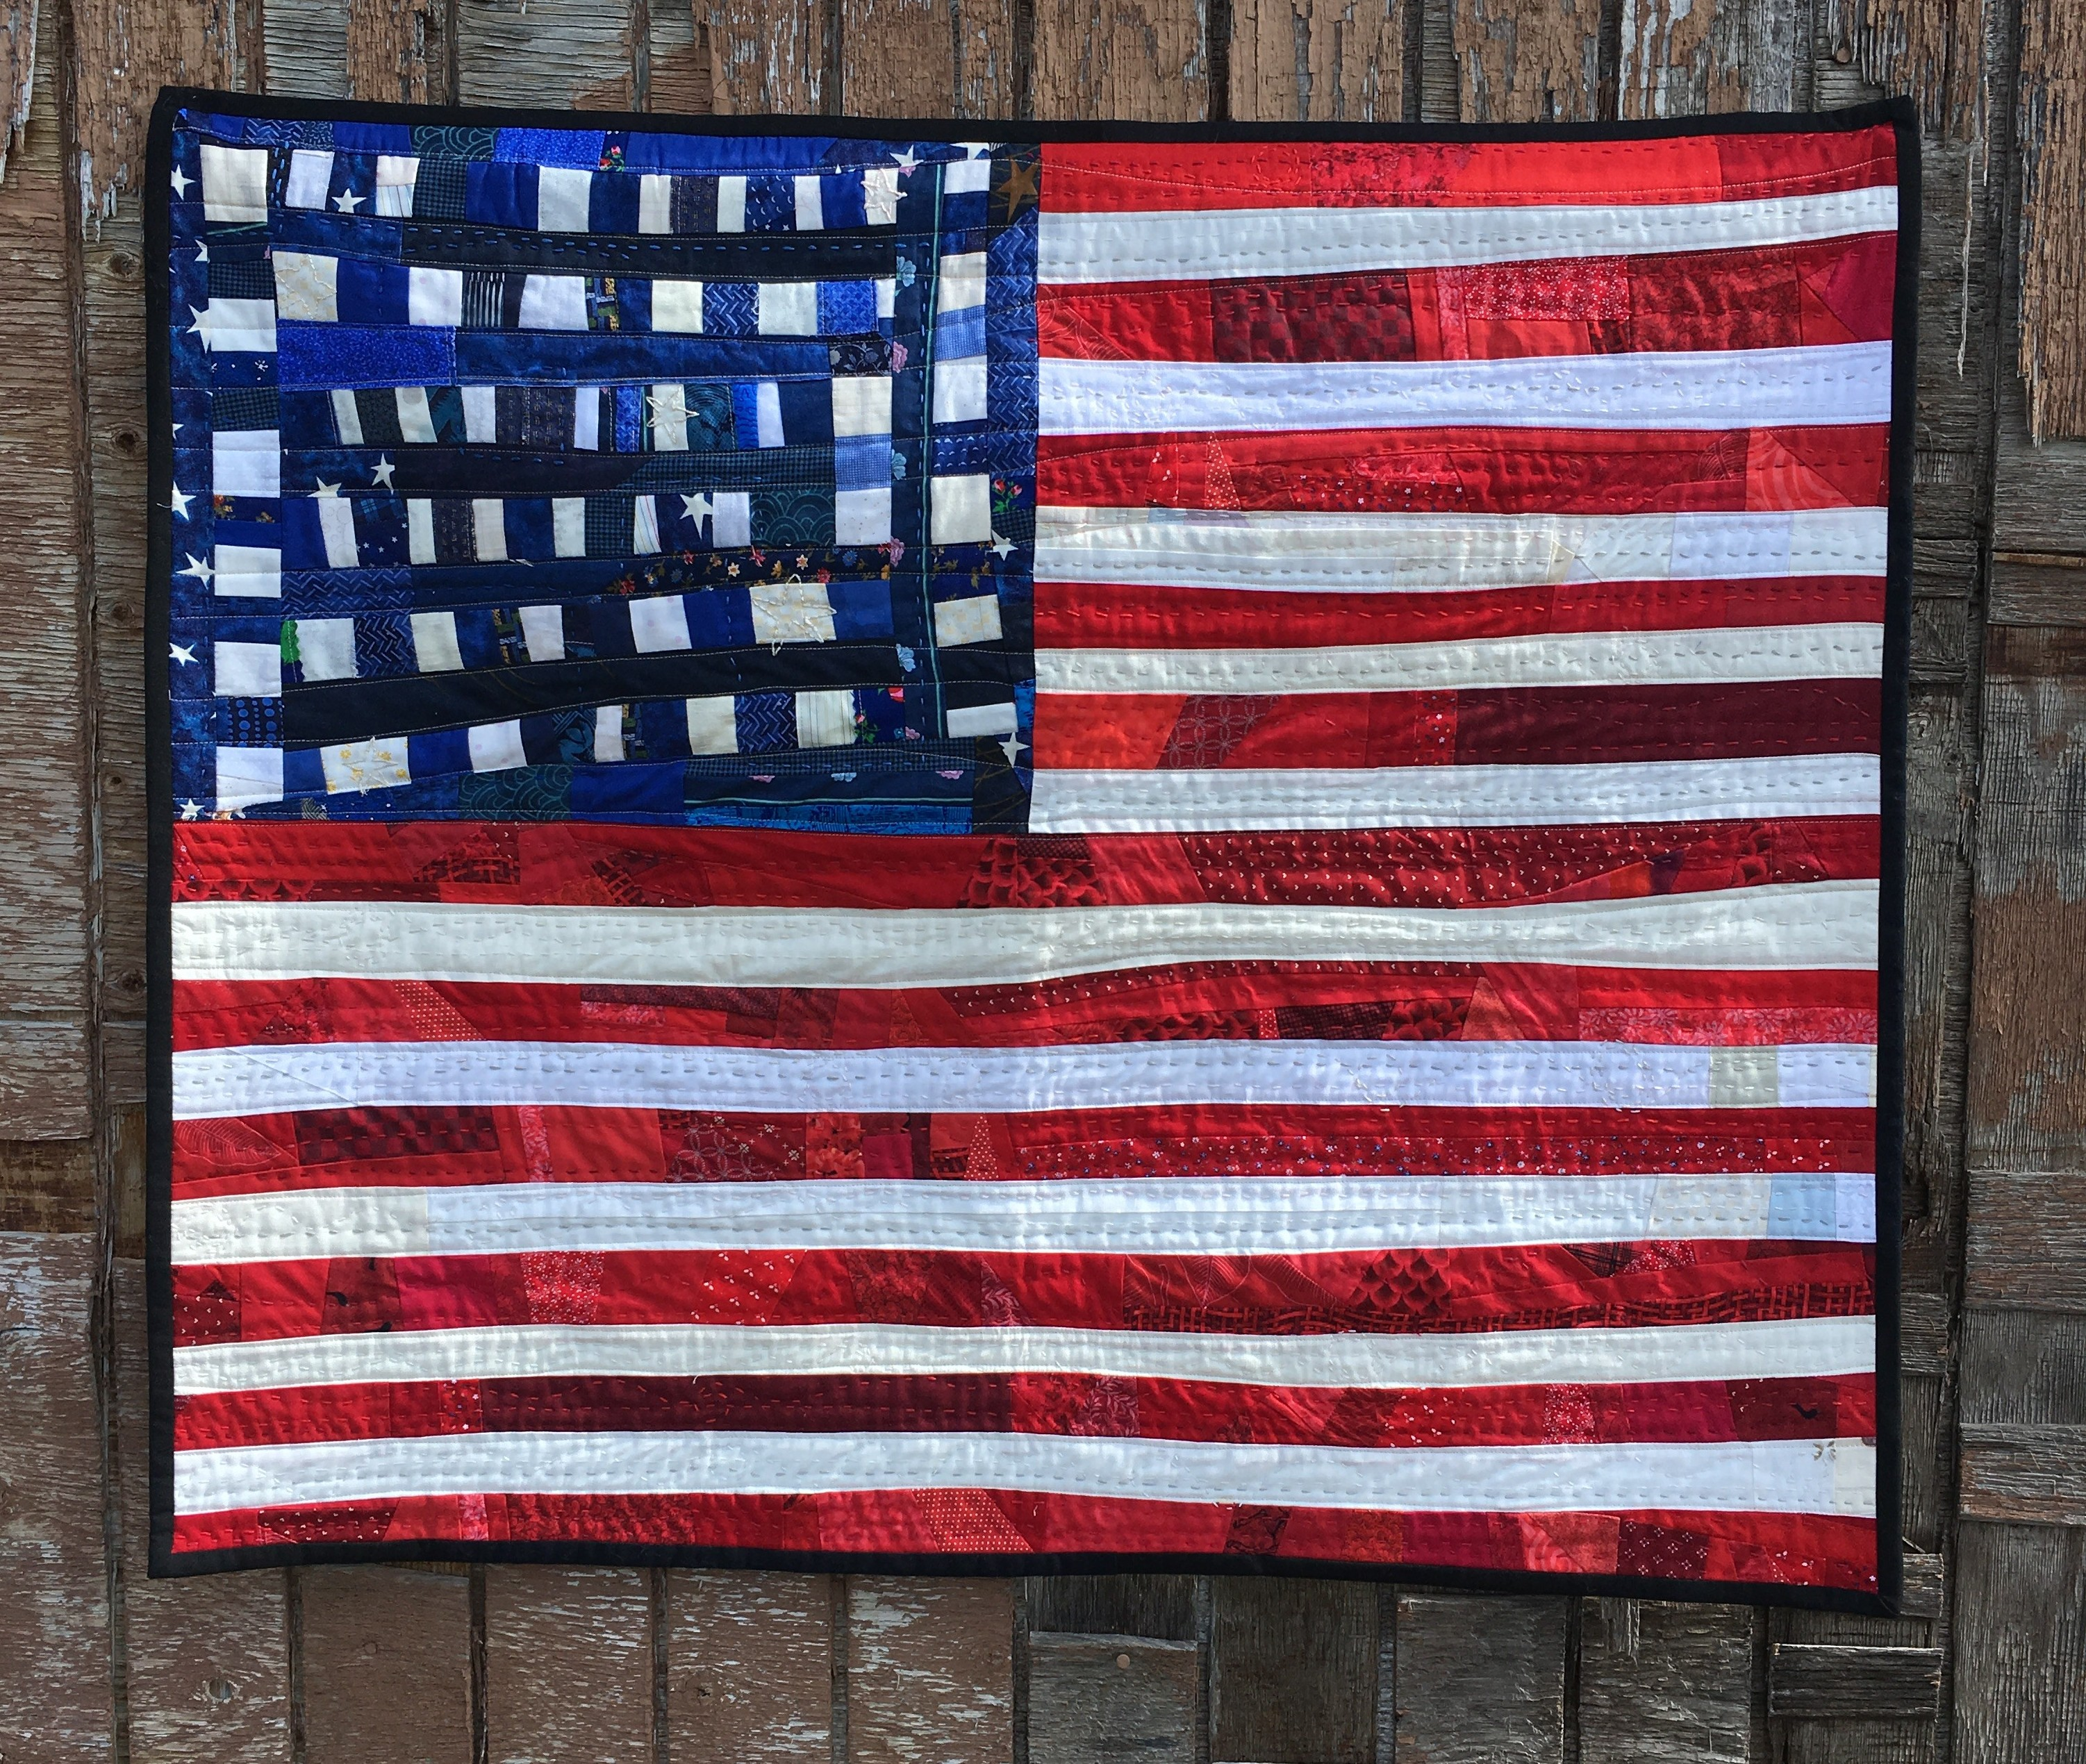 American Flag quilt by Noelle Olpin